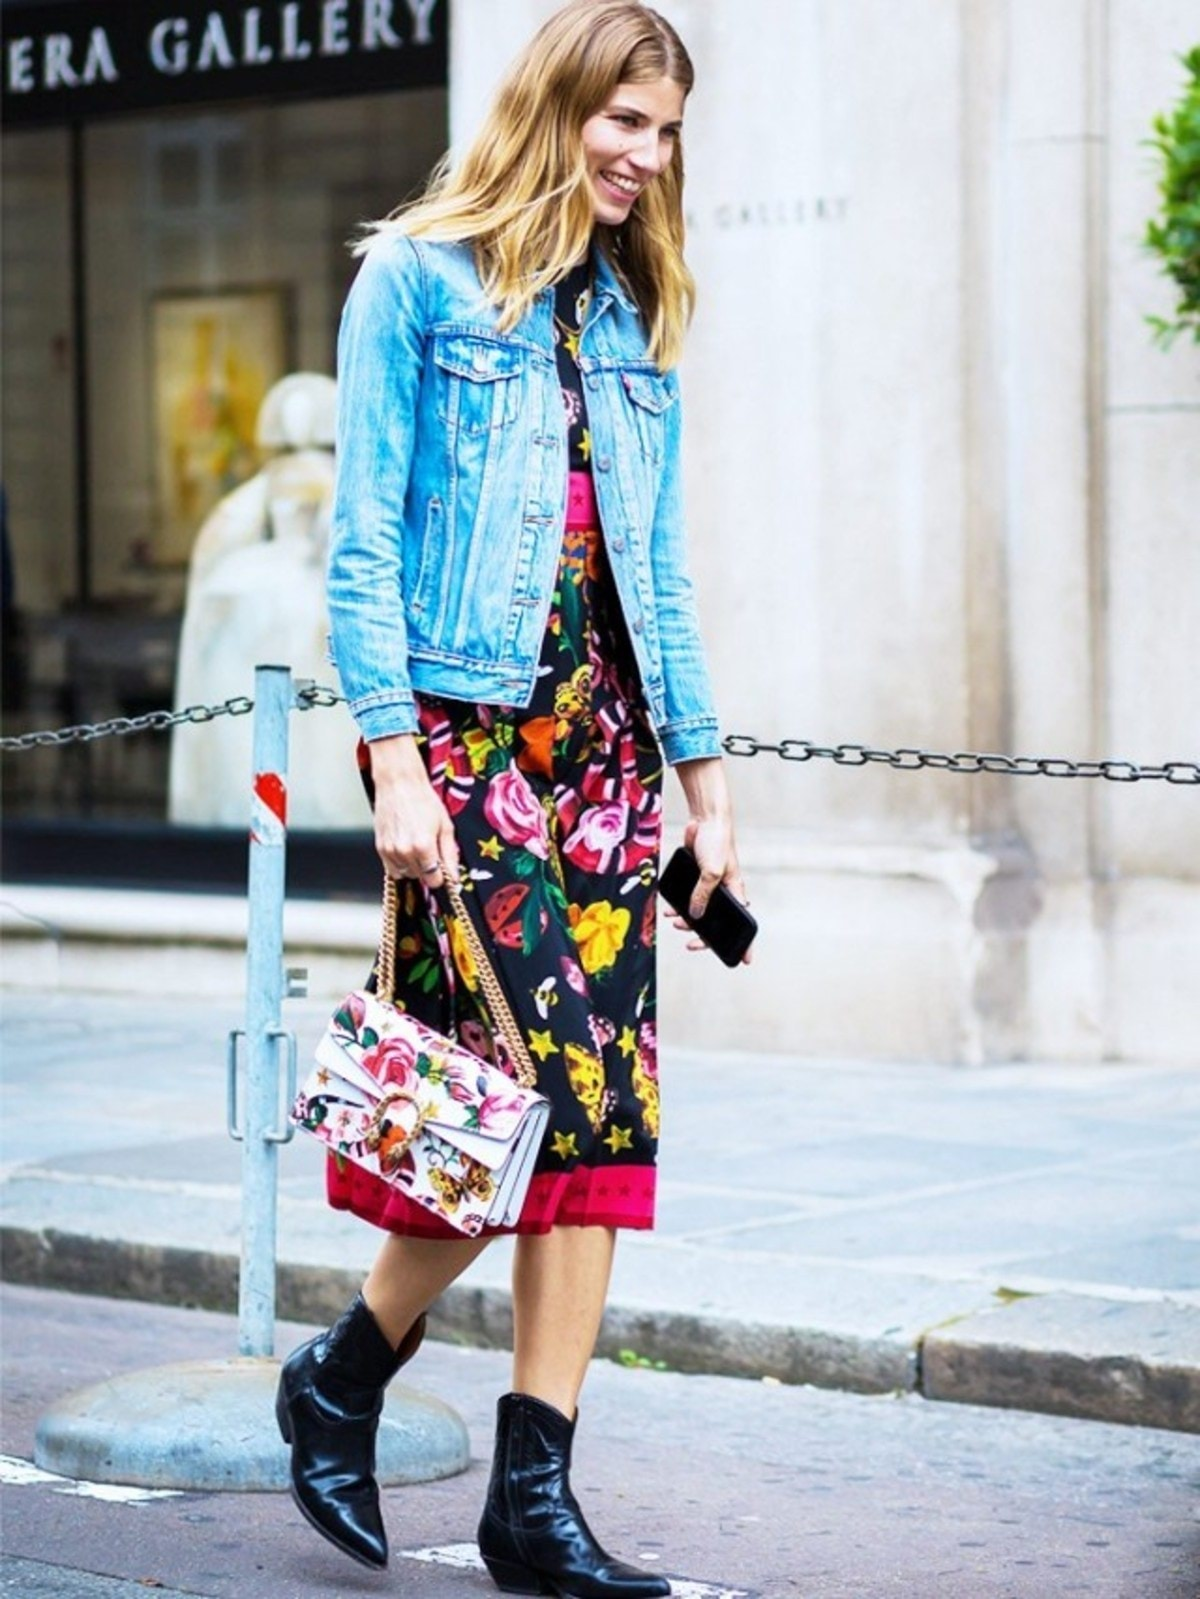 how-to-wear-ankle-boots-5-ways-to-style-them-now-1851707-1469707713.640x0c